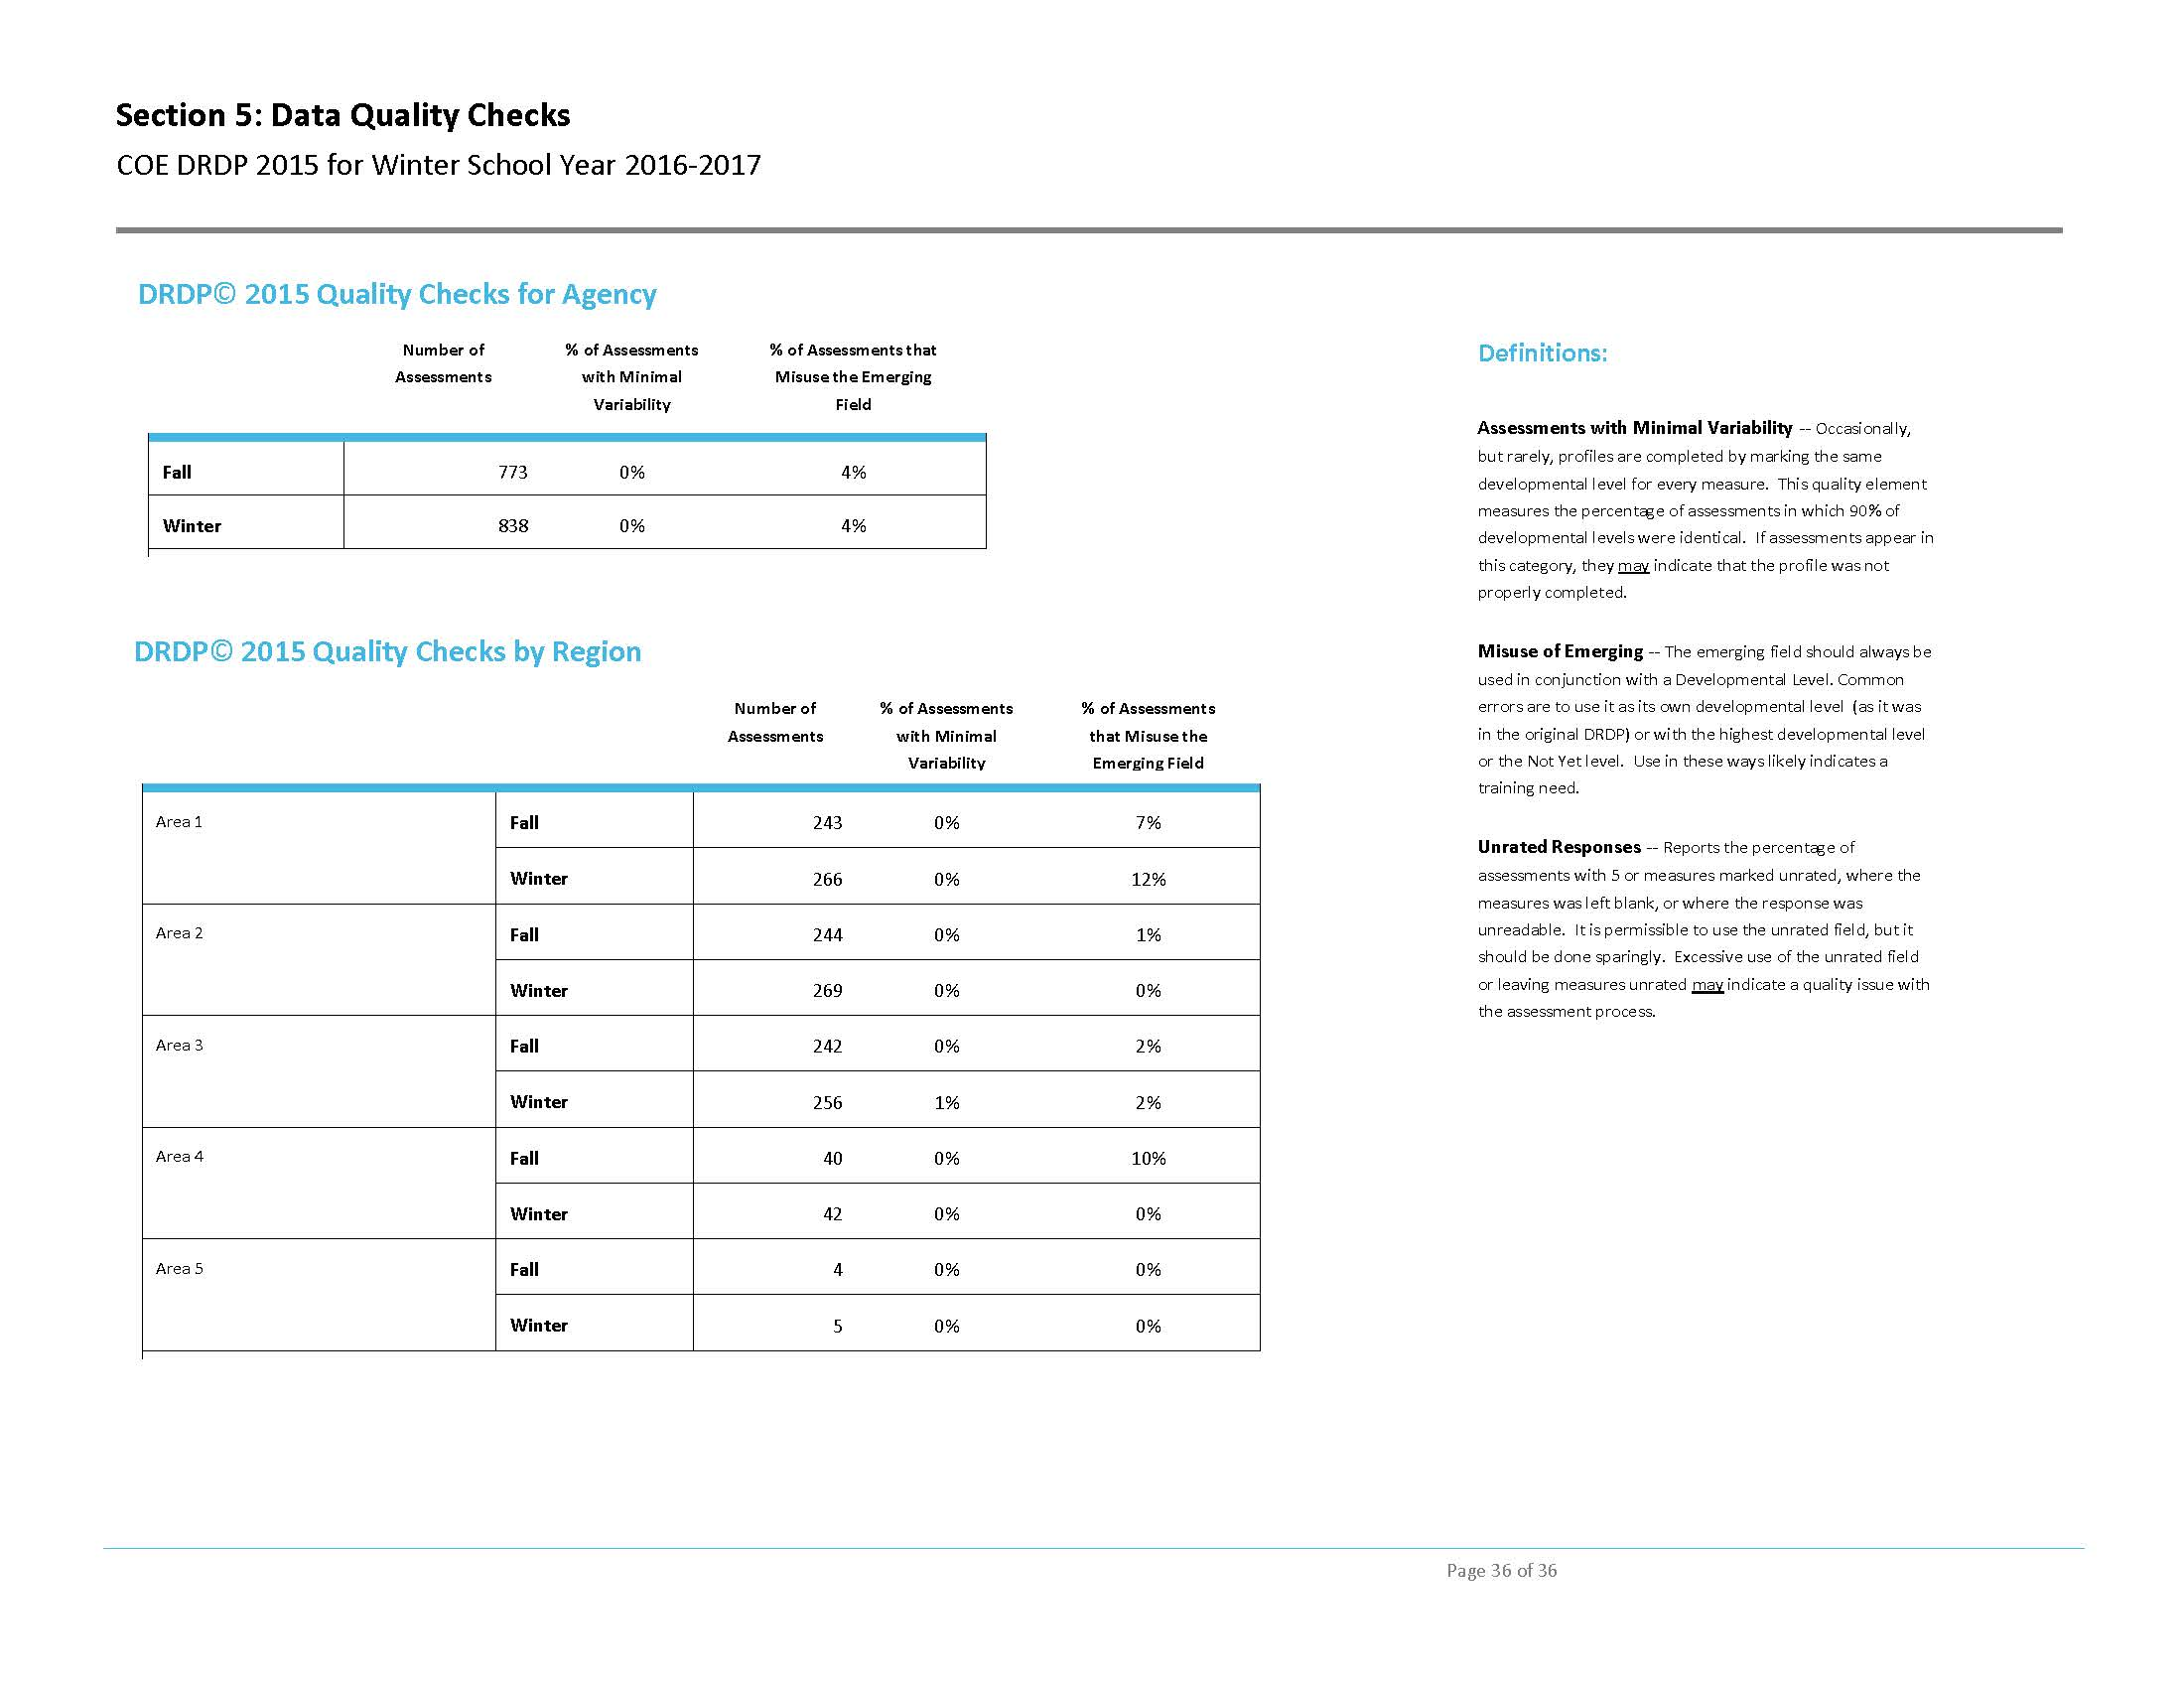 Sample CCR Analytics DRDP 2015 Agency Report_Foundations__Page_19.jpg